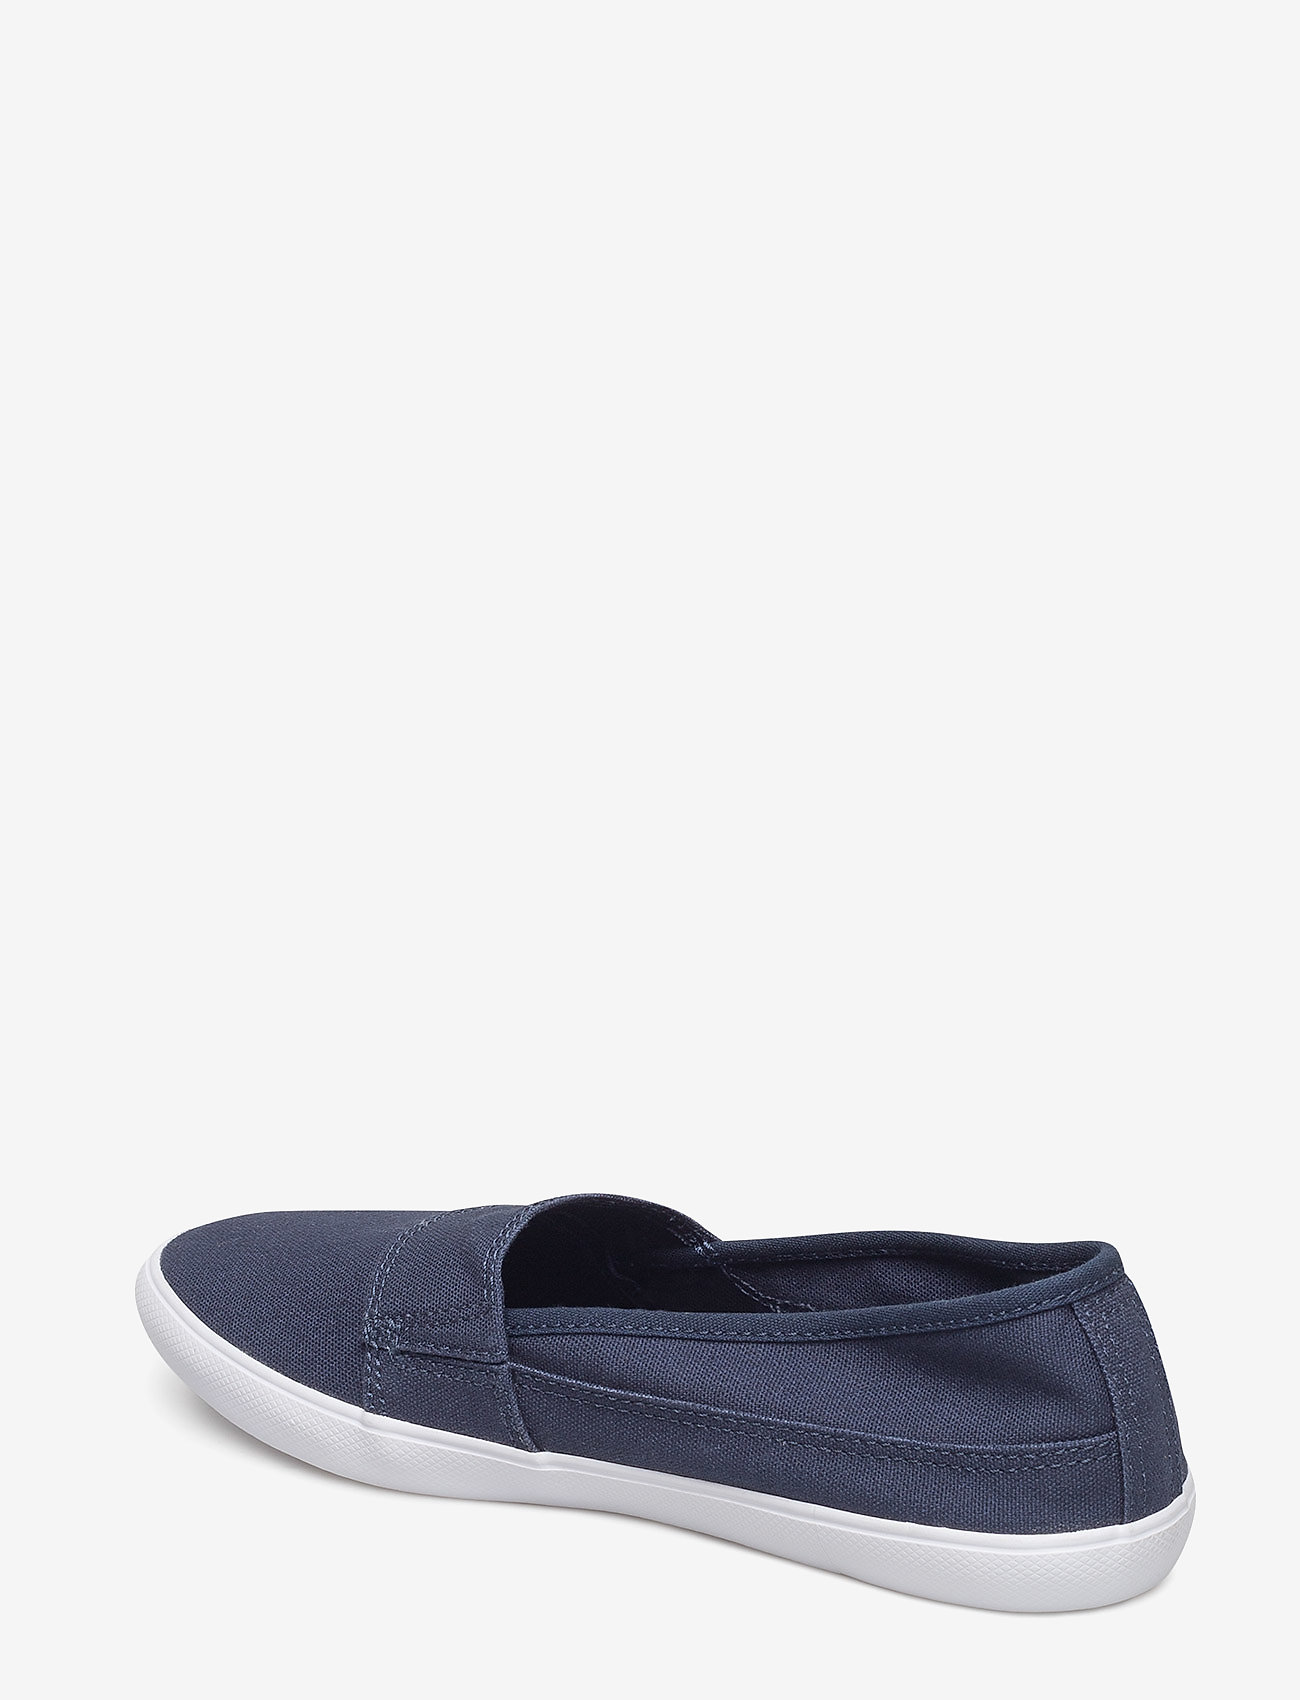 Marice Bl 2 Cfa (Nvy Cnv) - Lacoste Shoes